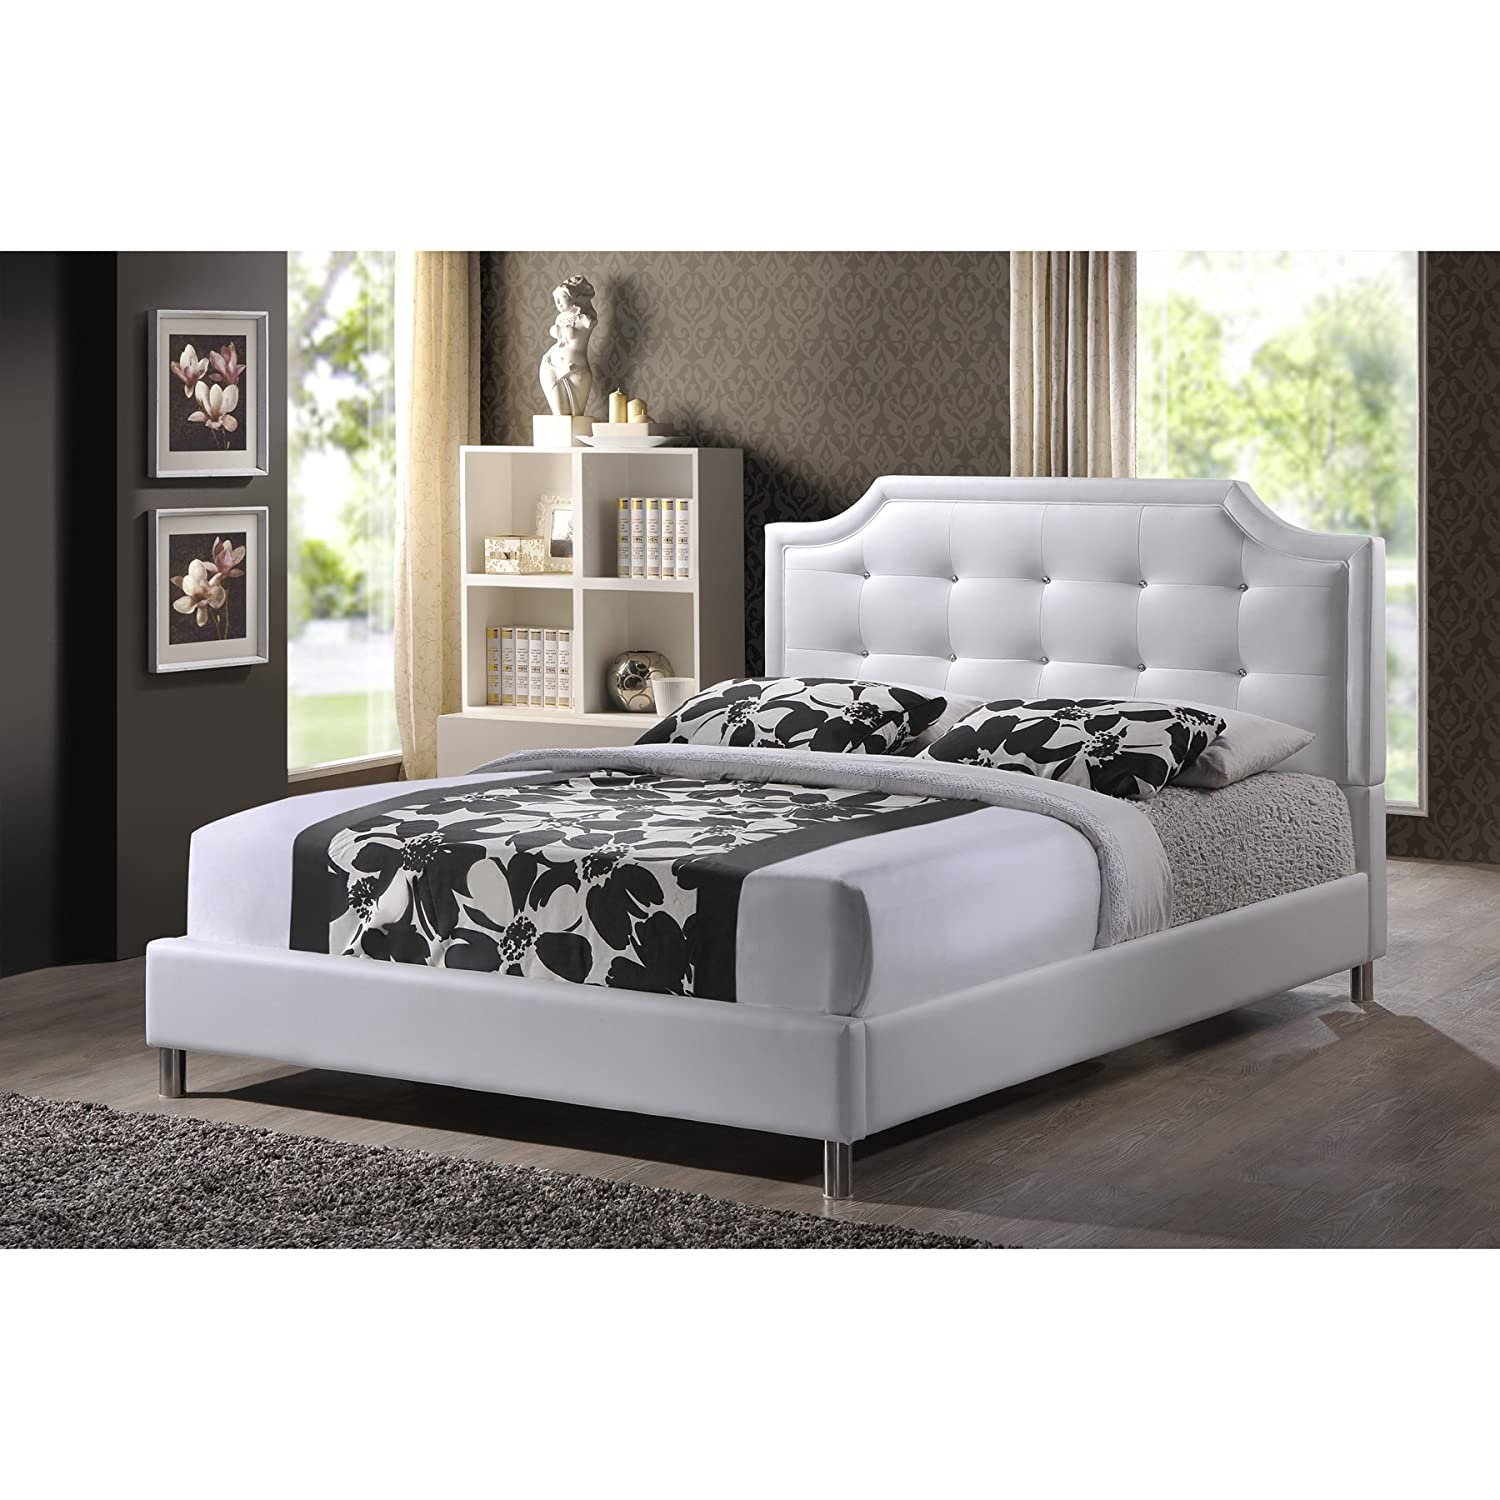 frames leather upholstered size for sale and beautiful madison twin kids modern queen buy ideas hi of platform headboards full with sets bed white mattress image wood drop to where beds king gorgeous bedroom wallpaper price frame crystals headboard